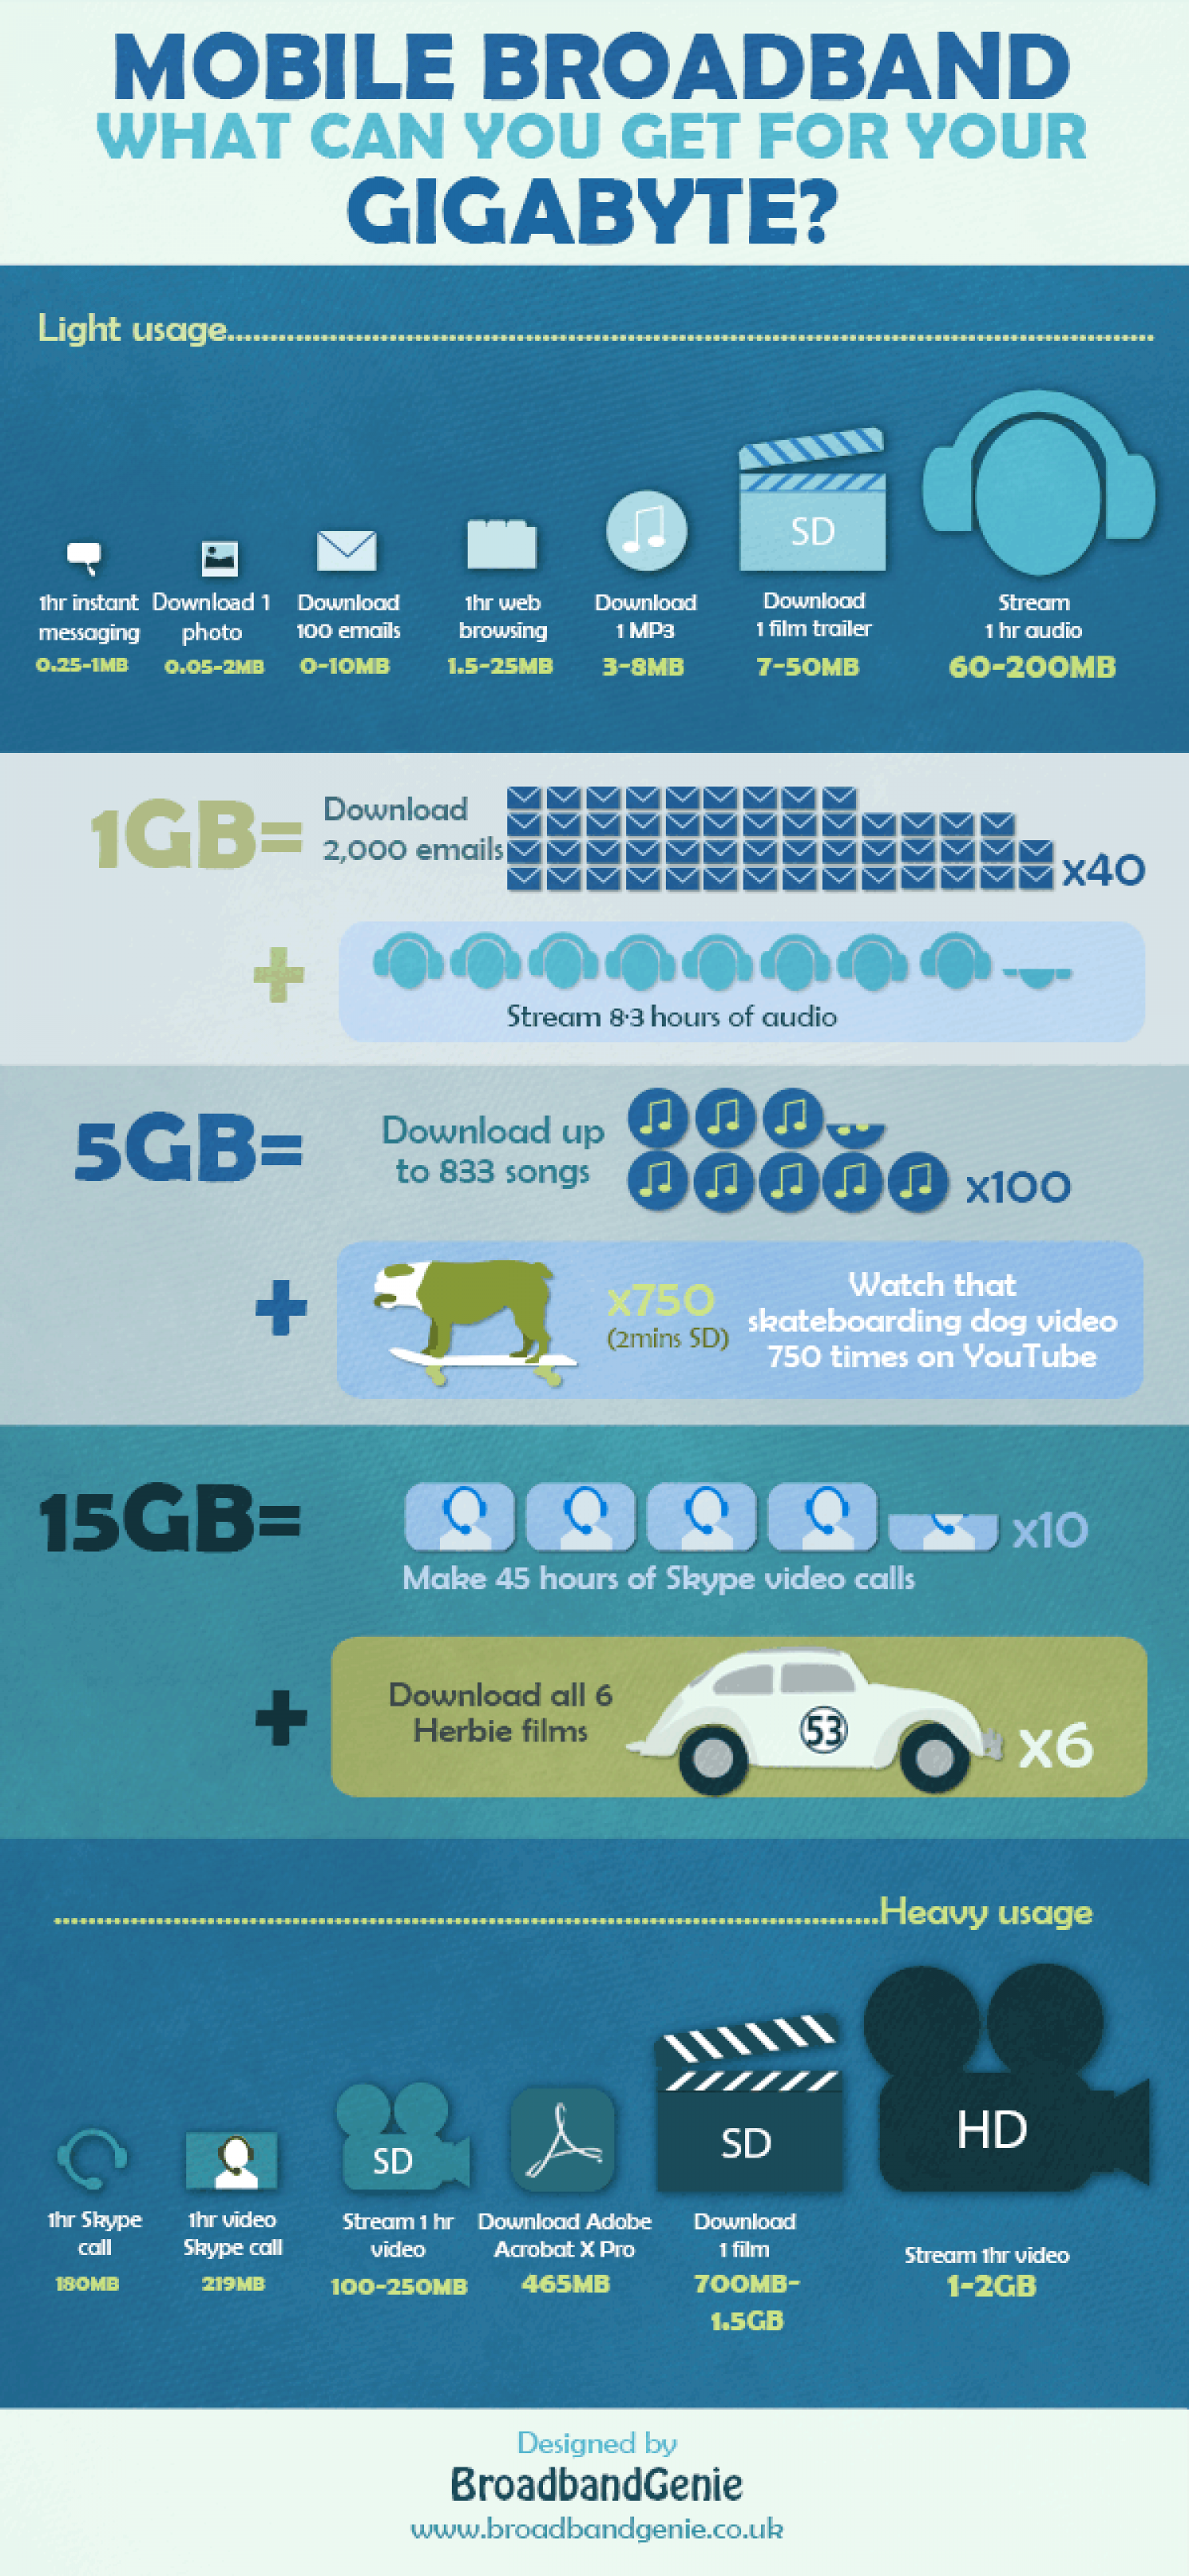 Mobile broadband: what can you get for your gigabyte? Infographic